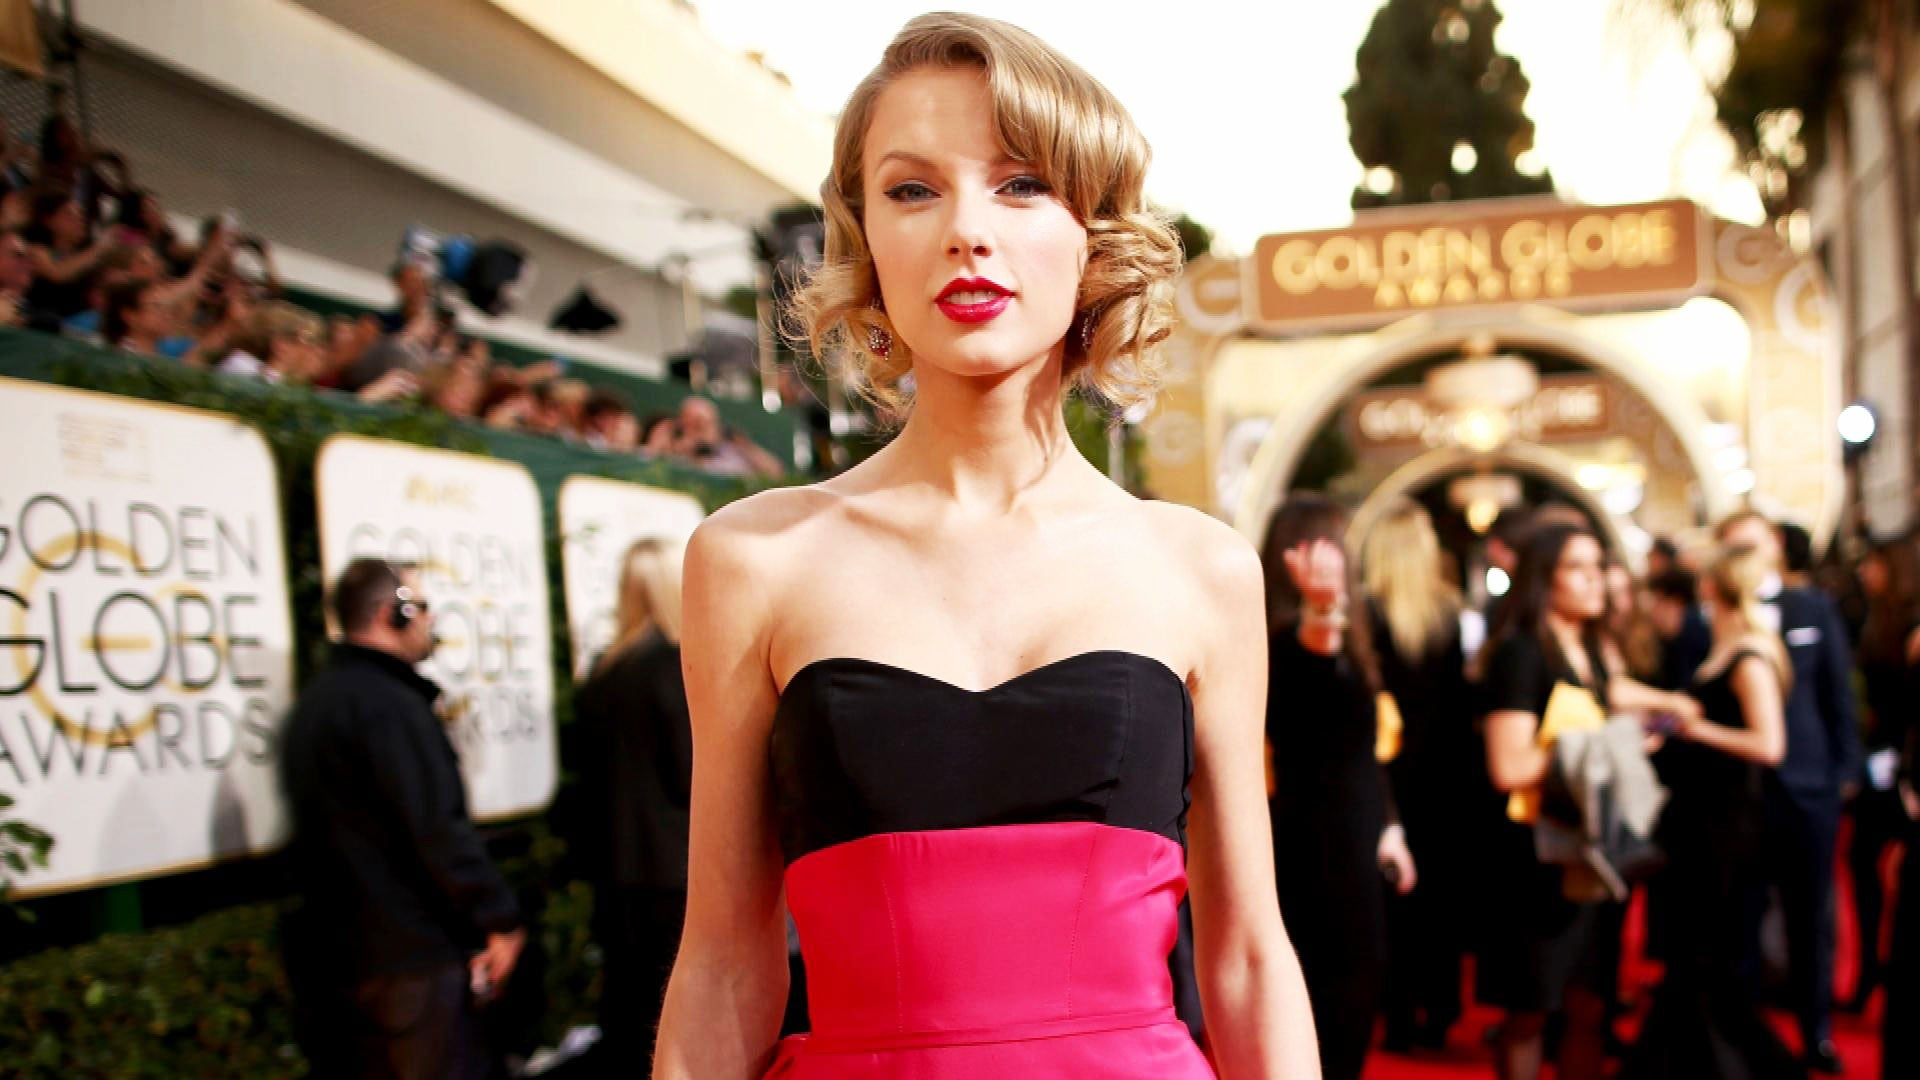 Taylor Swift Opens Up About Struggle With Body Image Issues